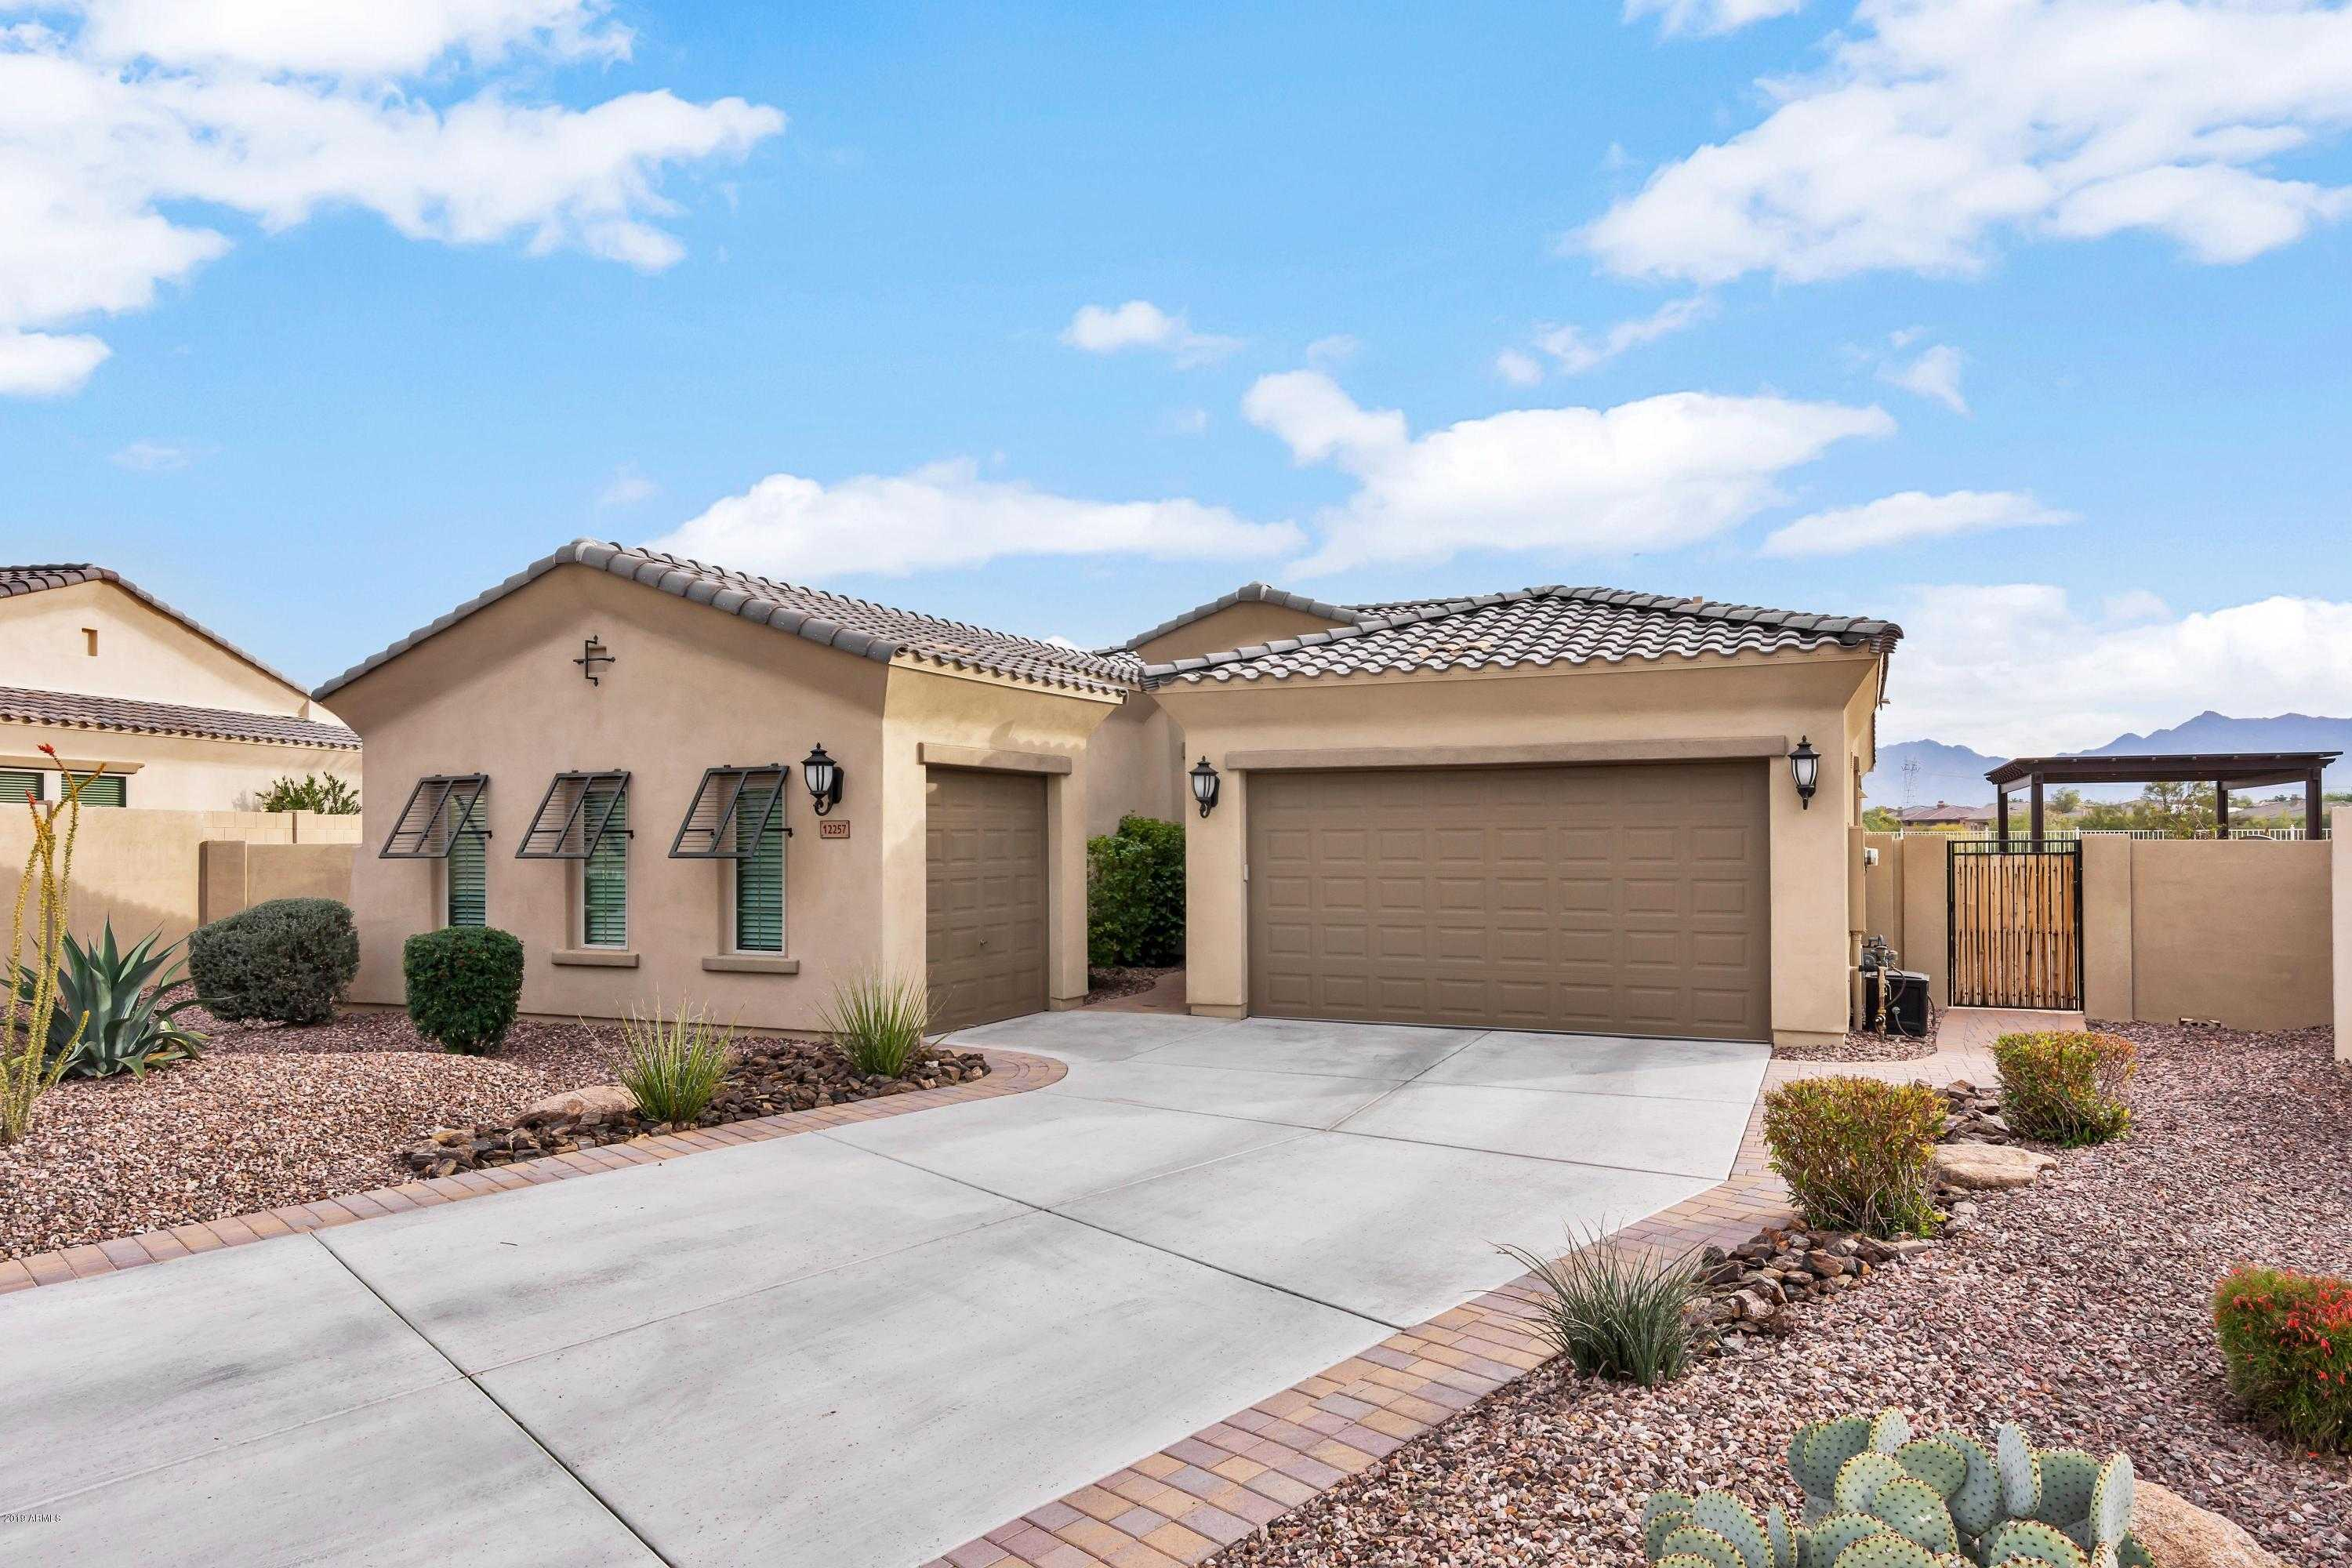 $510,000 - 3Br/2Ba - Home for Sale in Estrella Parcel 5.5 Phase 1, Goodyear